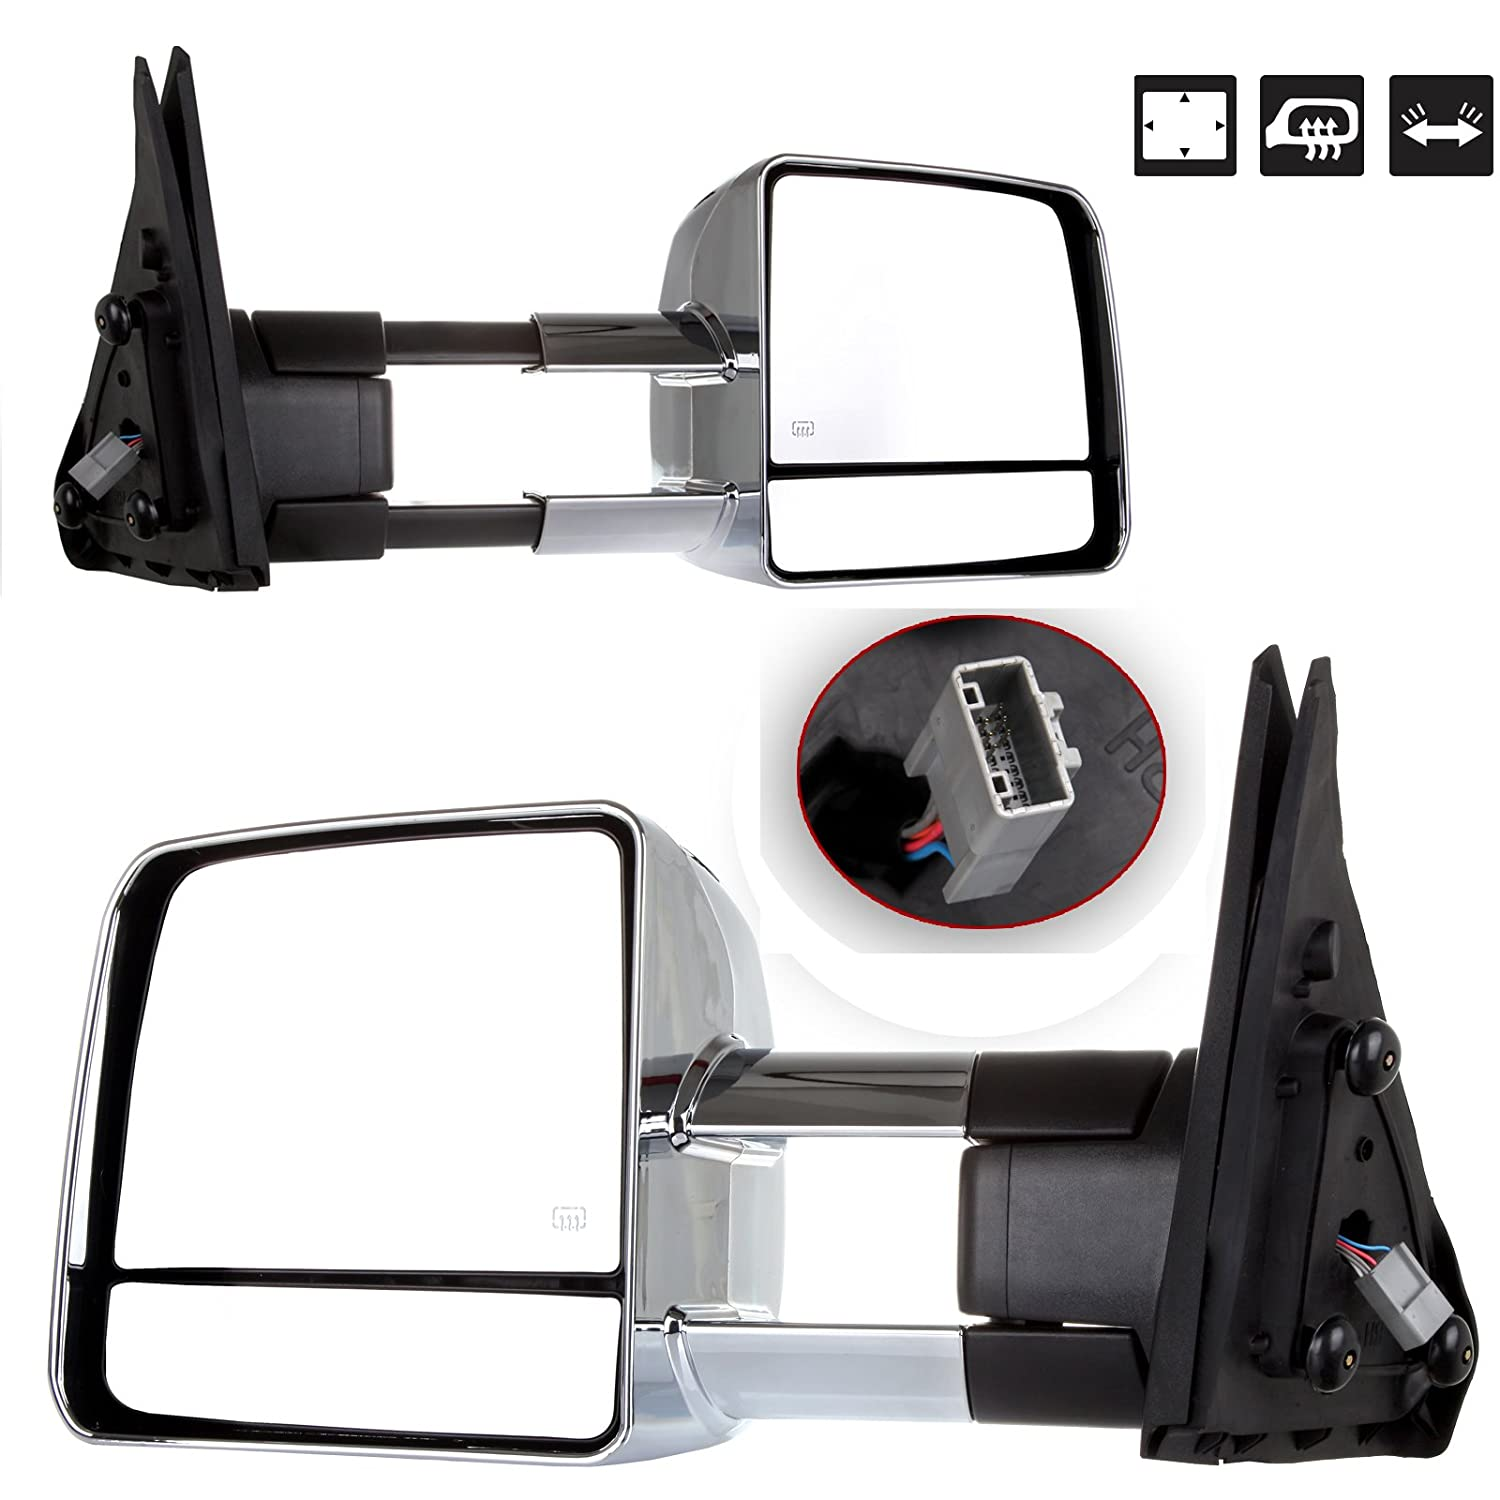 For Toyota Automotive Exterior Mirrors by ECCPP Towing Mirrros Replacement fit for 2007-2014 Tundra with Power Adjusted for Main Mirror-Heated-Amber Signal-Pair 065033-5211-1652061